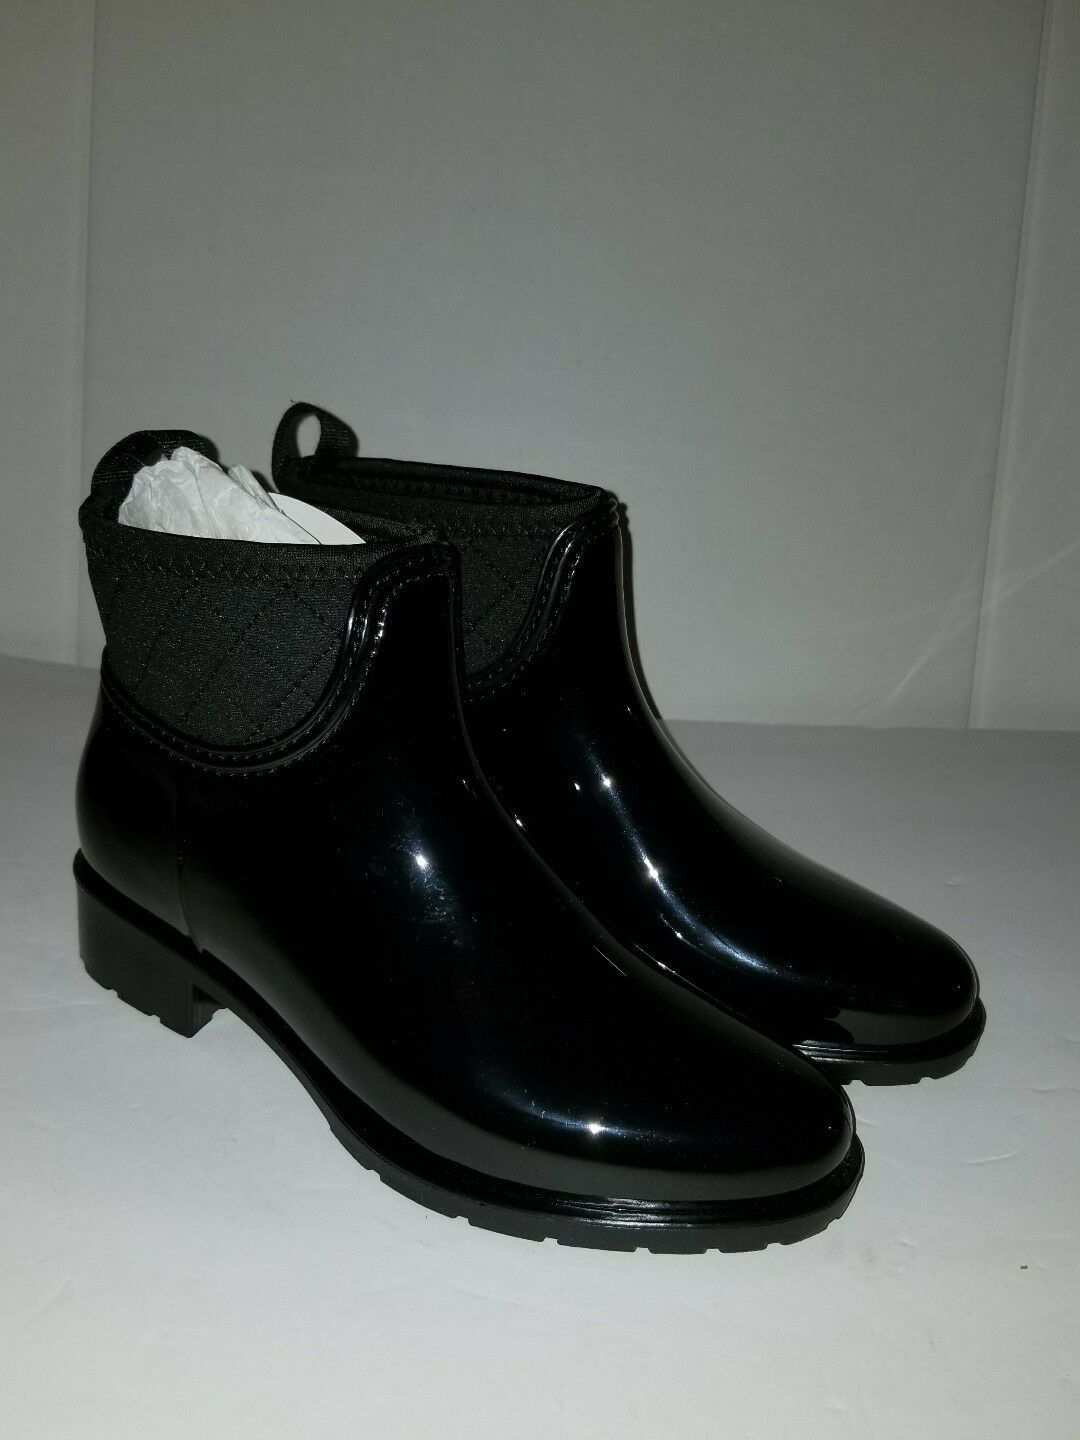 DAV PARMA MID ANKLE RAIN BOOTS - BLACK  SIZE 11 FITS A SIZE 10 or 9.5